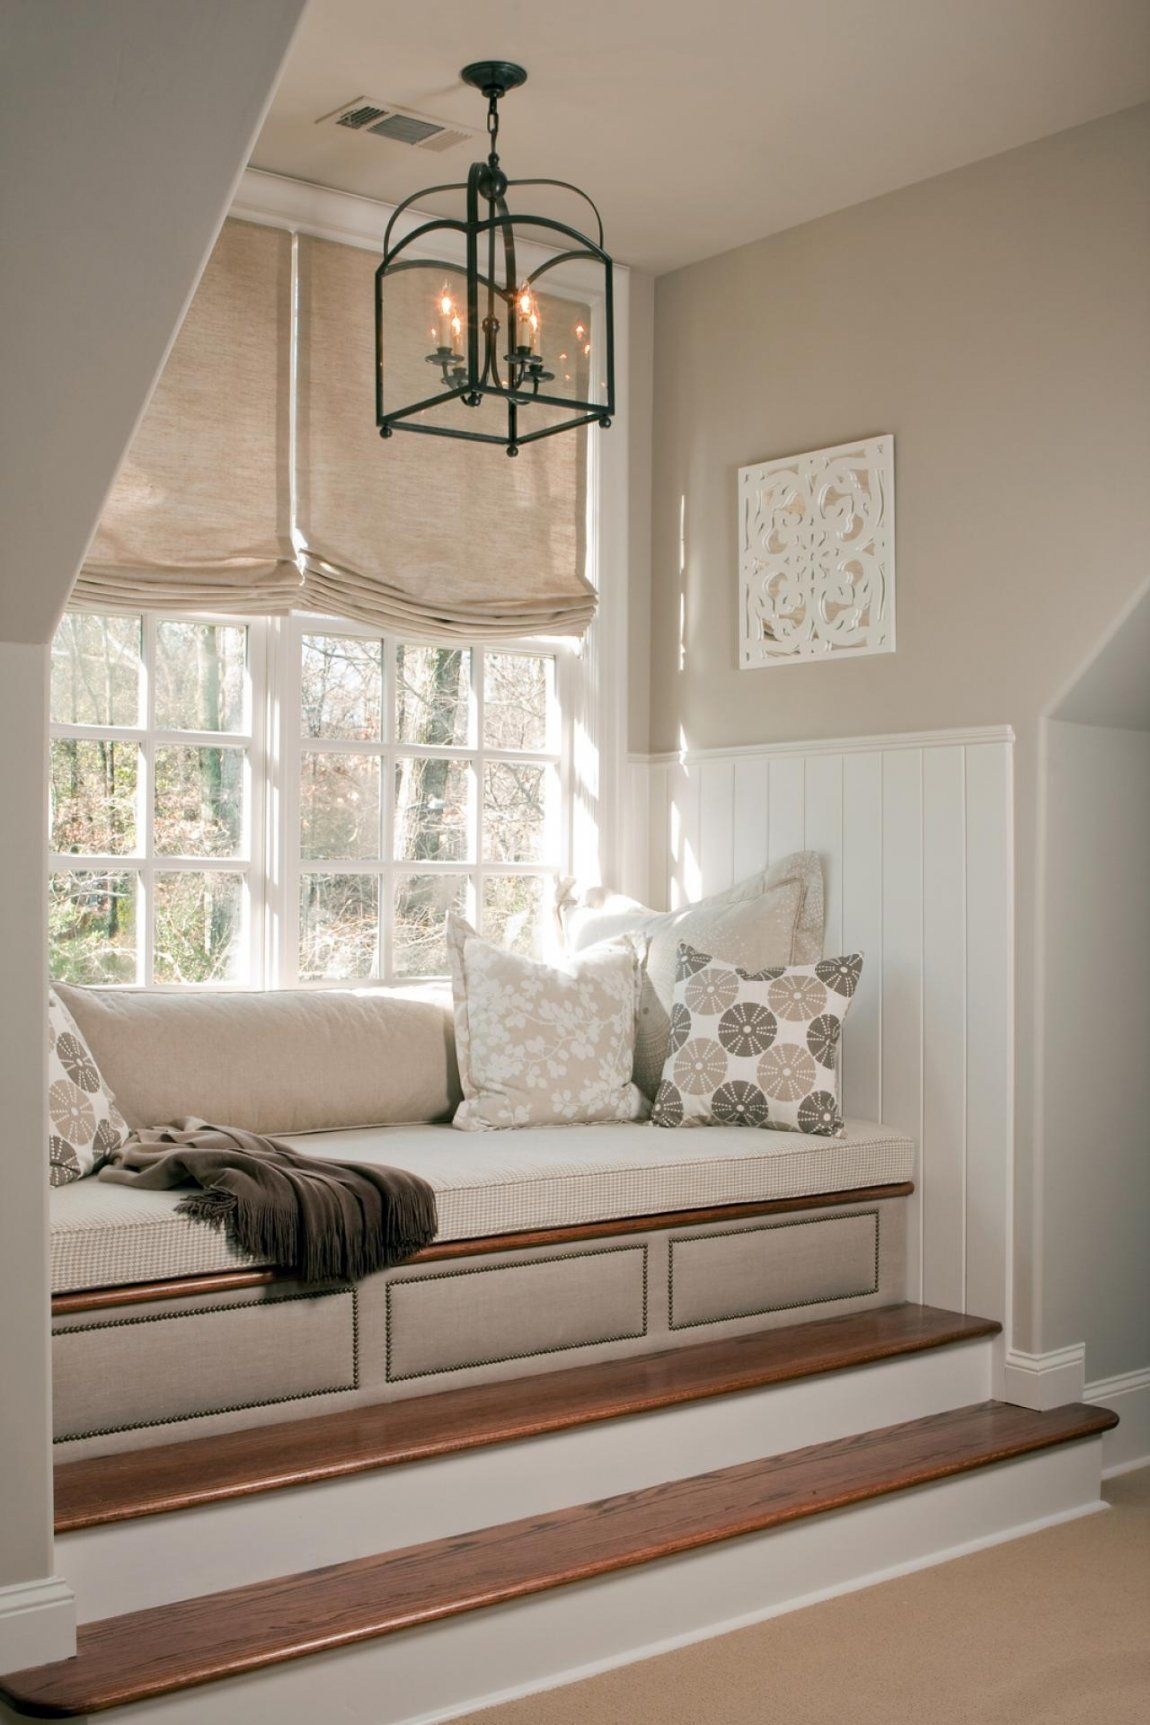 How To Decorate A Dormer Window Built Ins Ideas Storage Bedroom